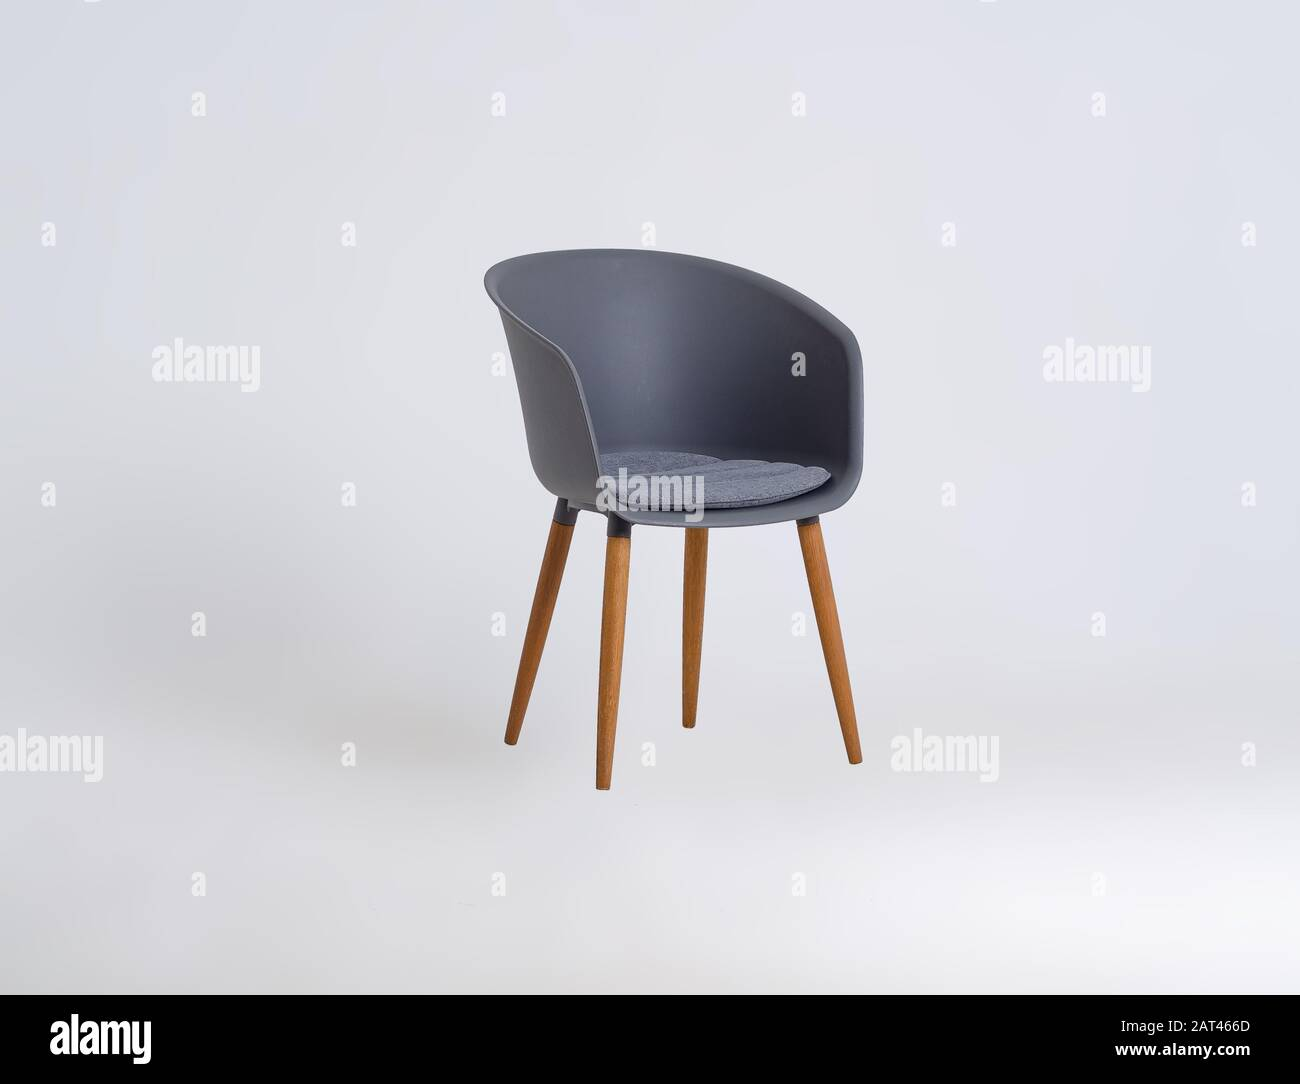 Modern Chair Furniture Monochromatic High Resolution Stock Photography And Images Alamy